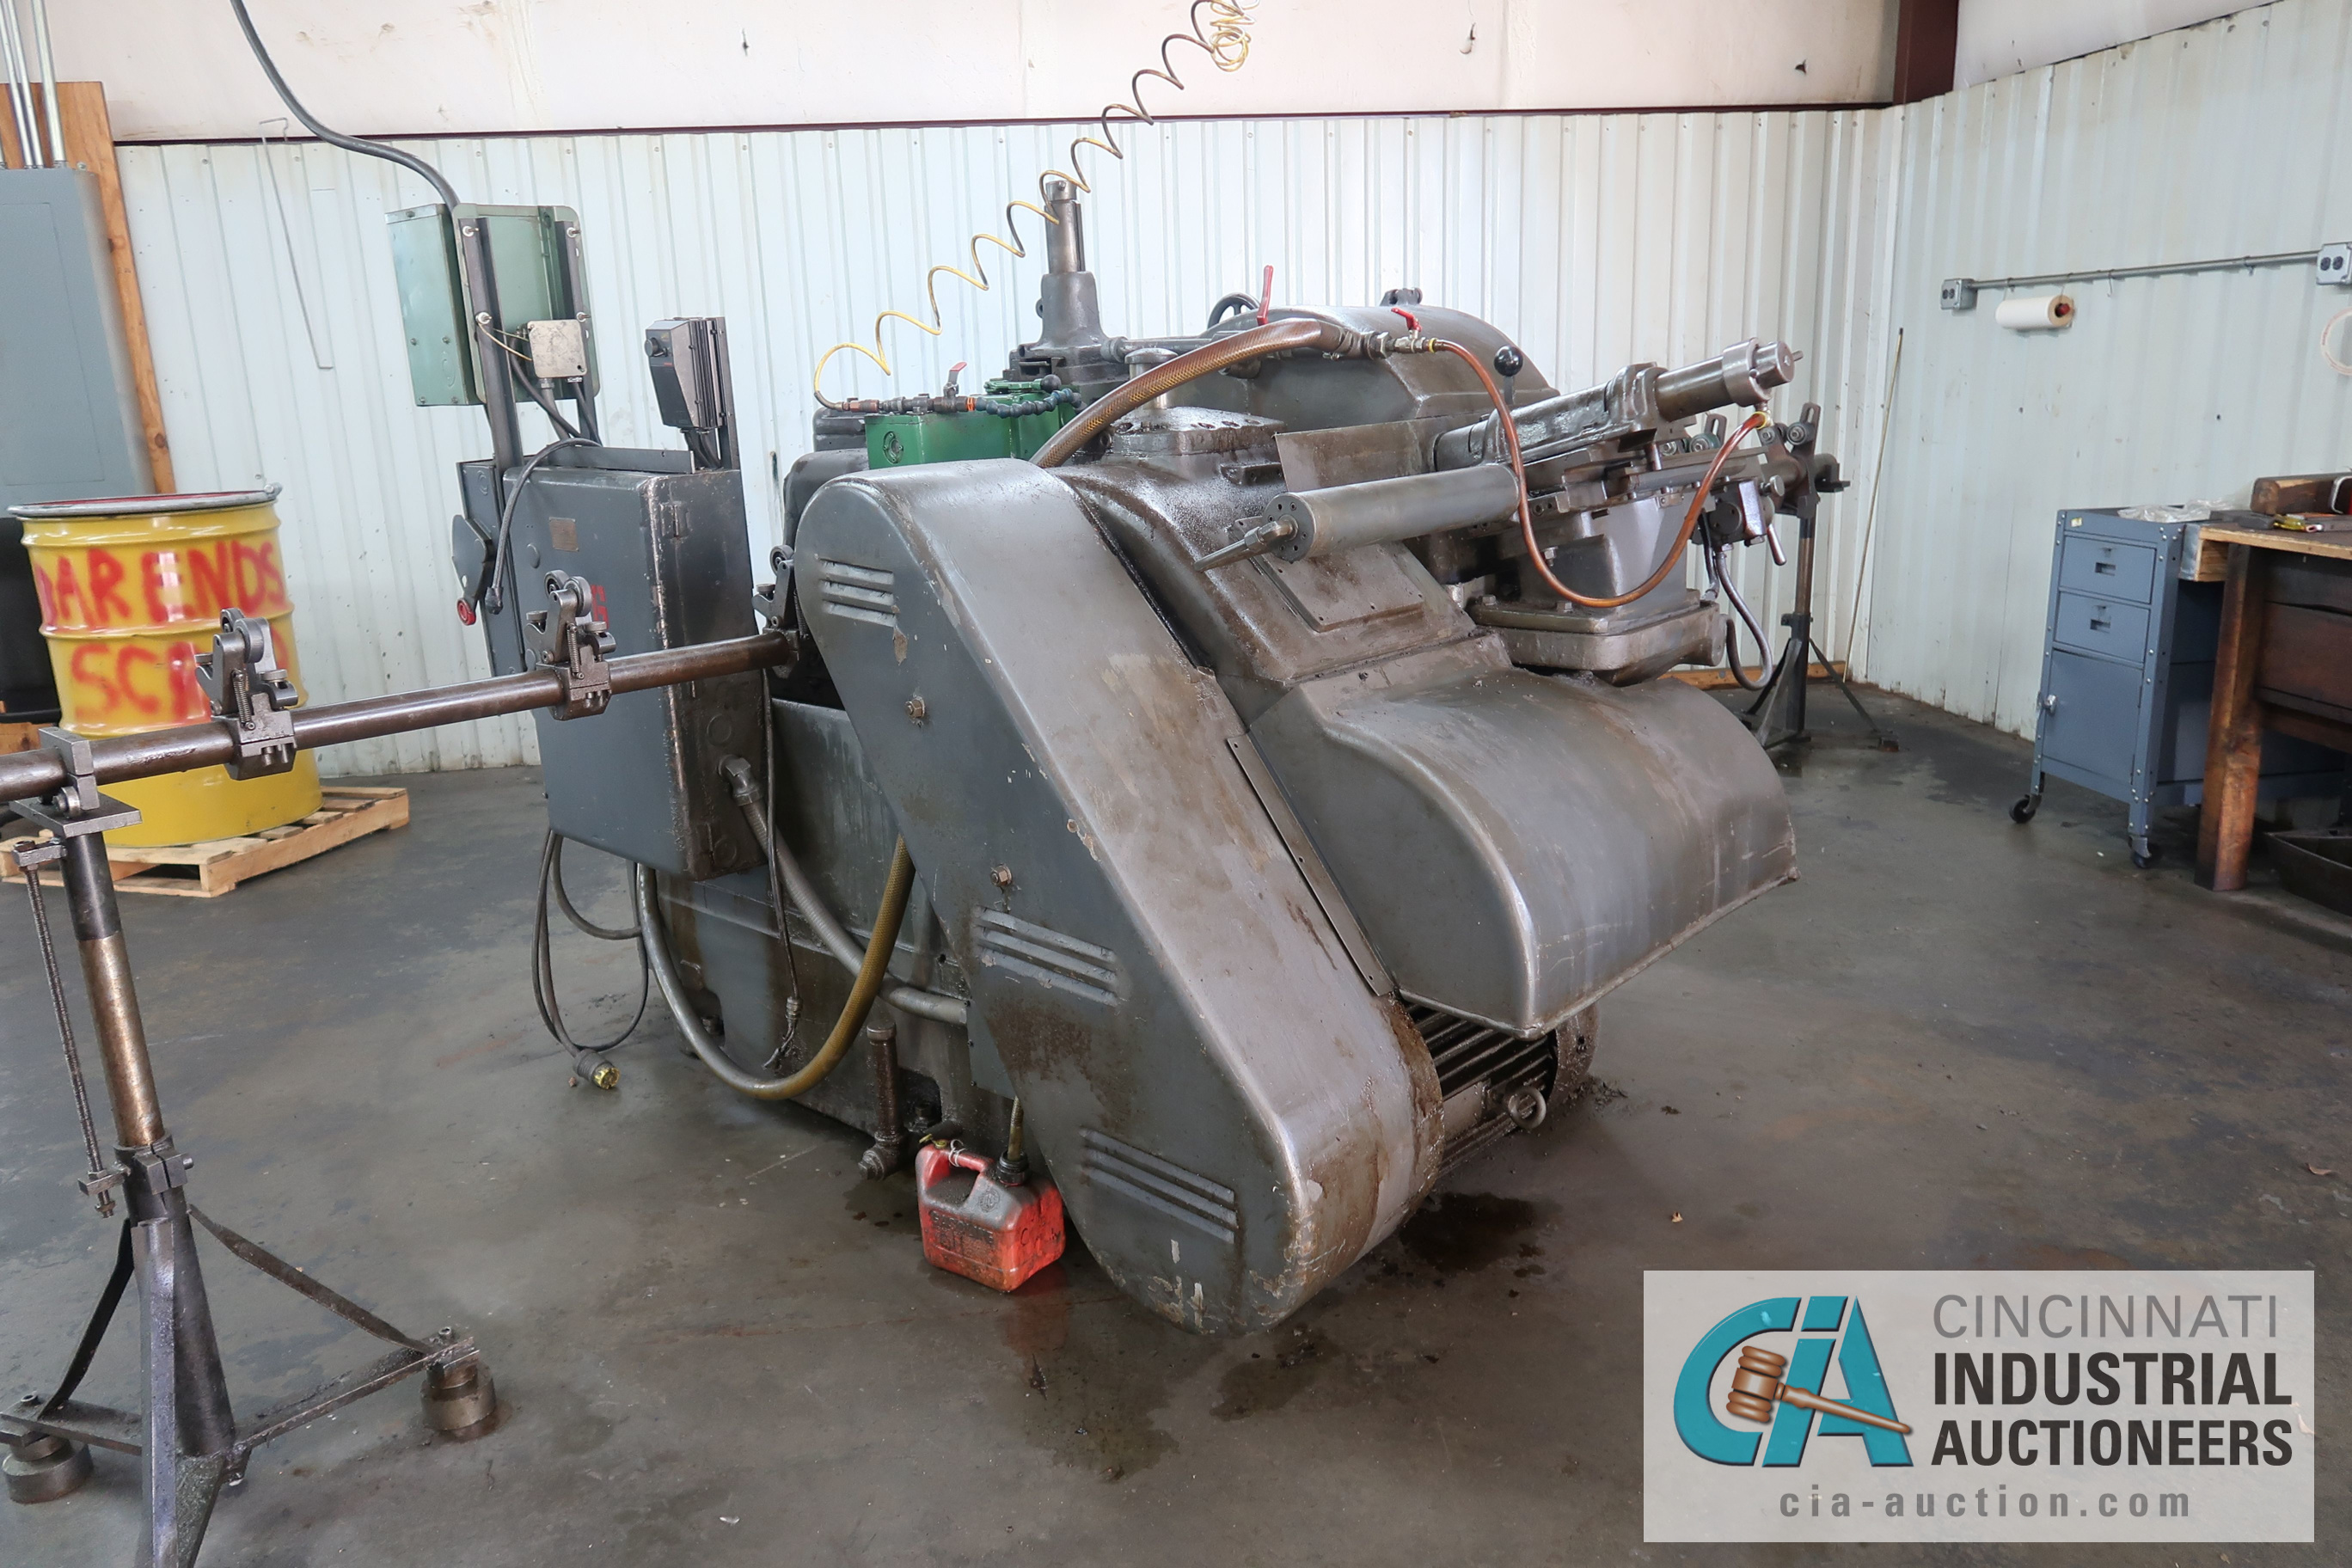 CINCINNATI MODEL 3 CENTERLESS GRINDER; S/N 3M3H5A-37 WITH INFEED AND OUTFEED CONVEYORS - Image 2 of 5